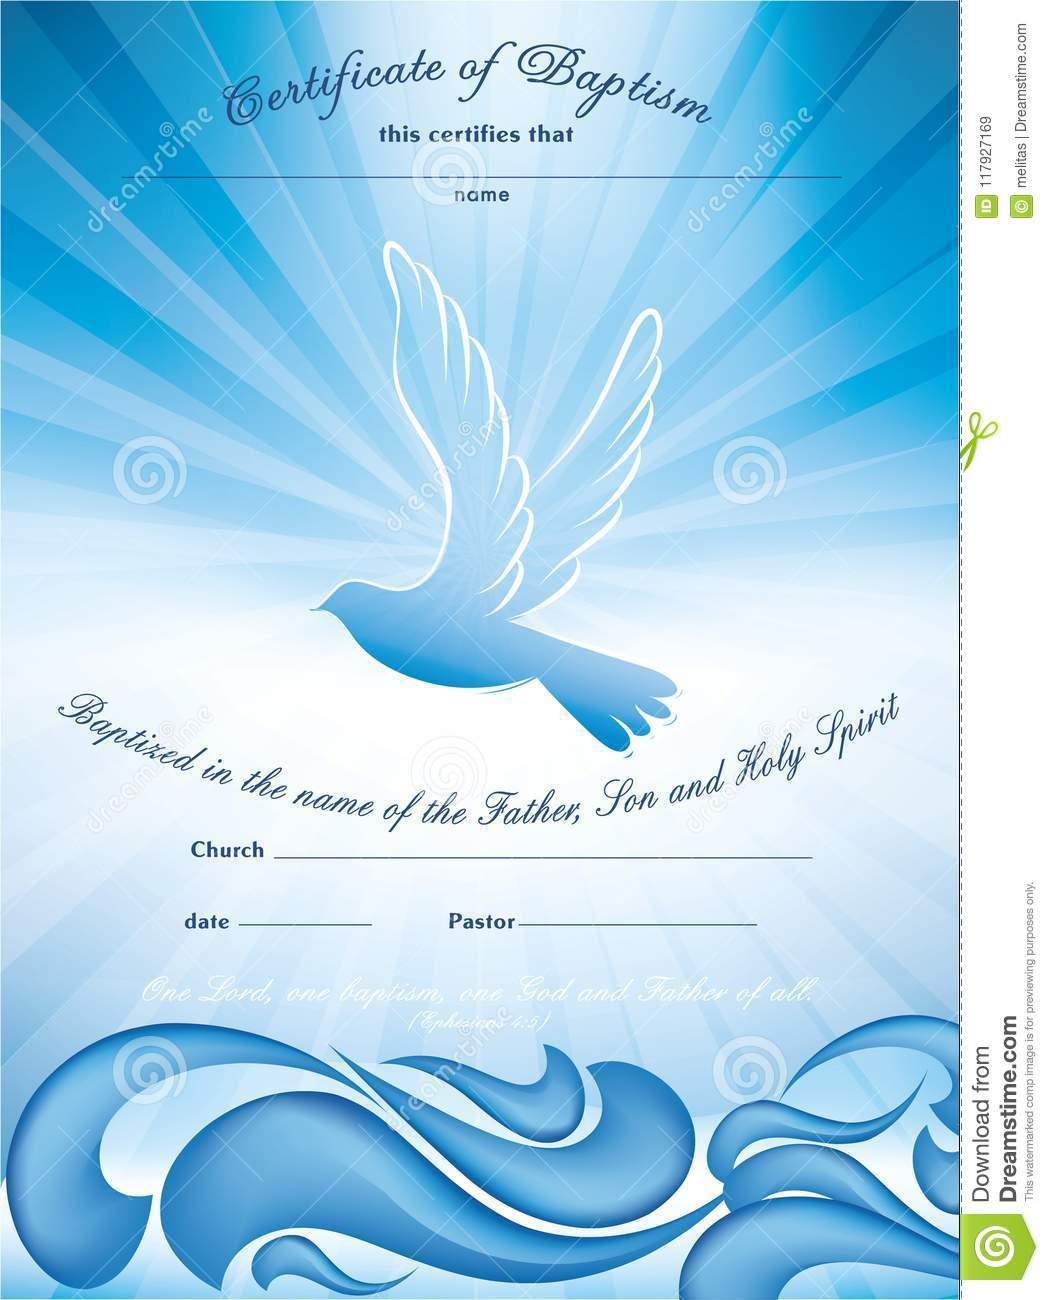 Certificate Baptism Template With Waves Of Water And Dove Multiple